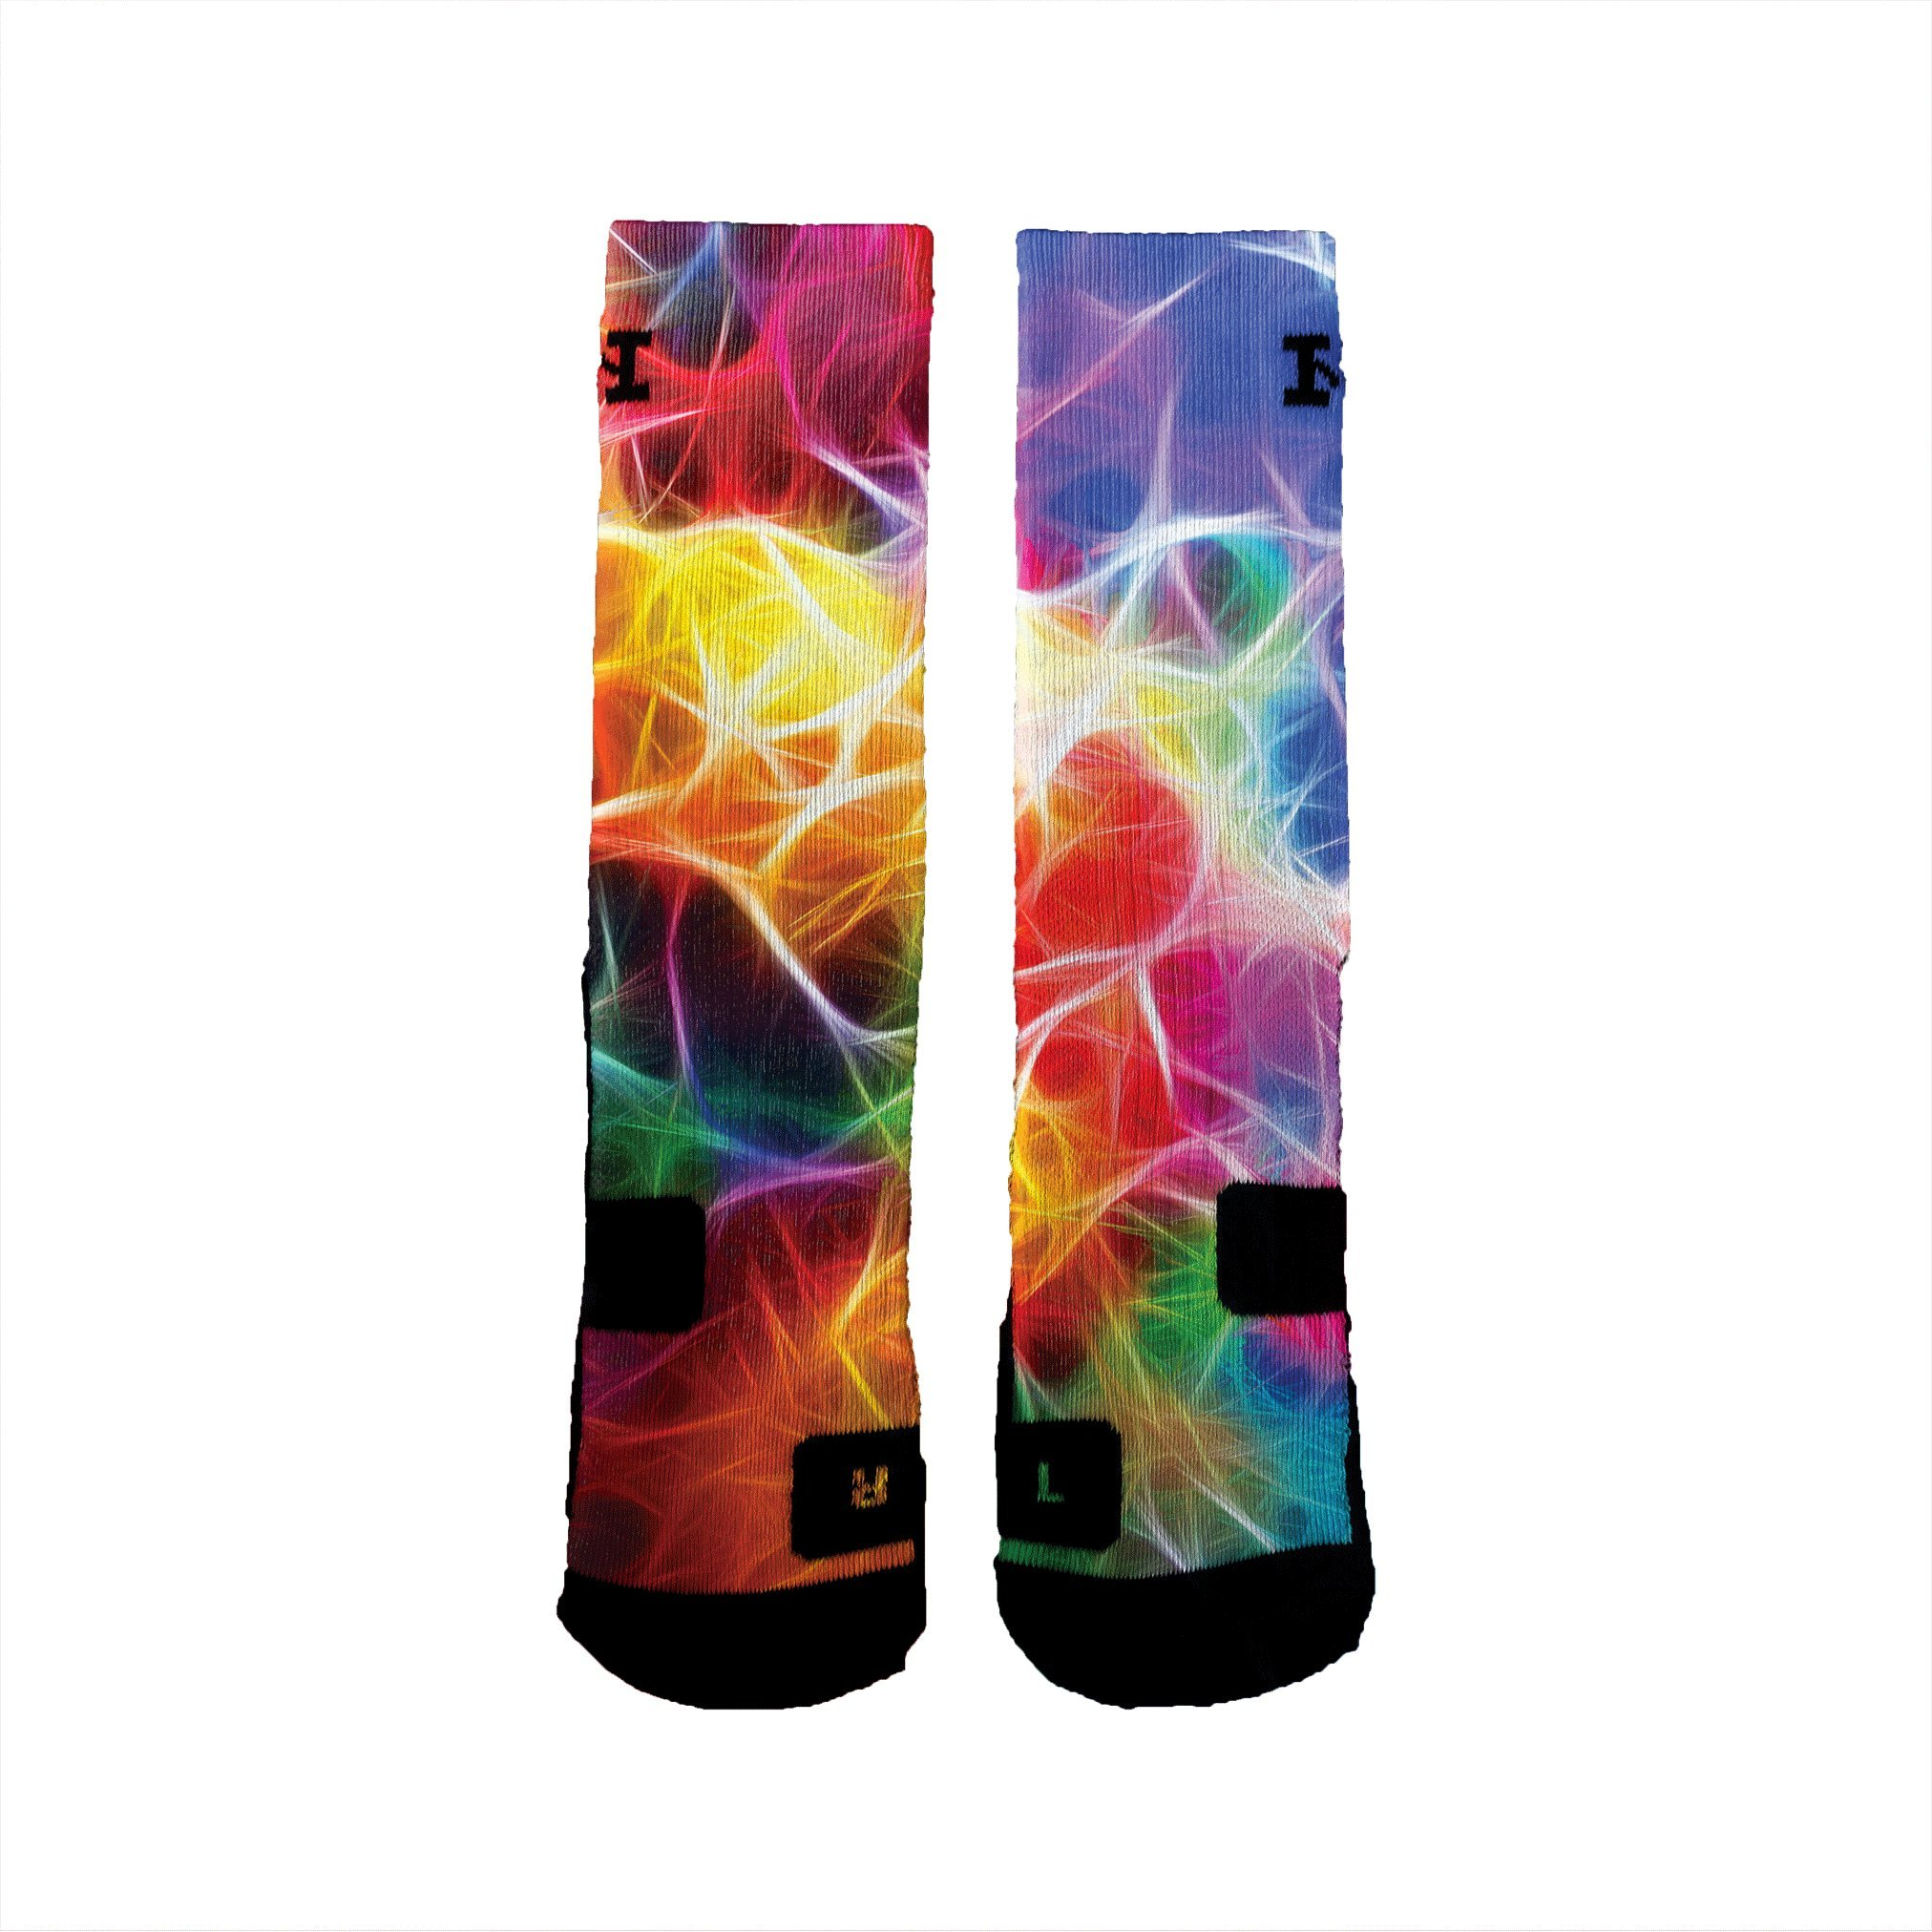 HoopSwagg Brand Athletic Socks Neuron Magic Medium